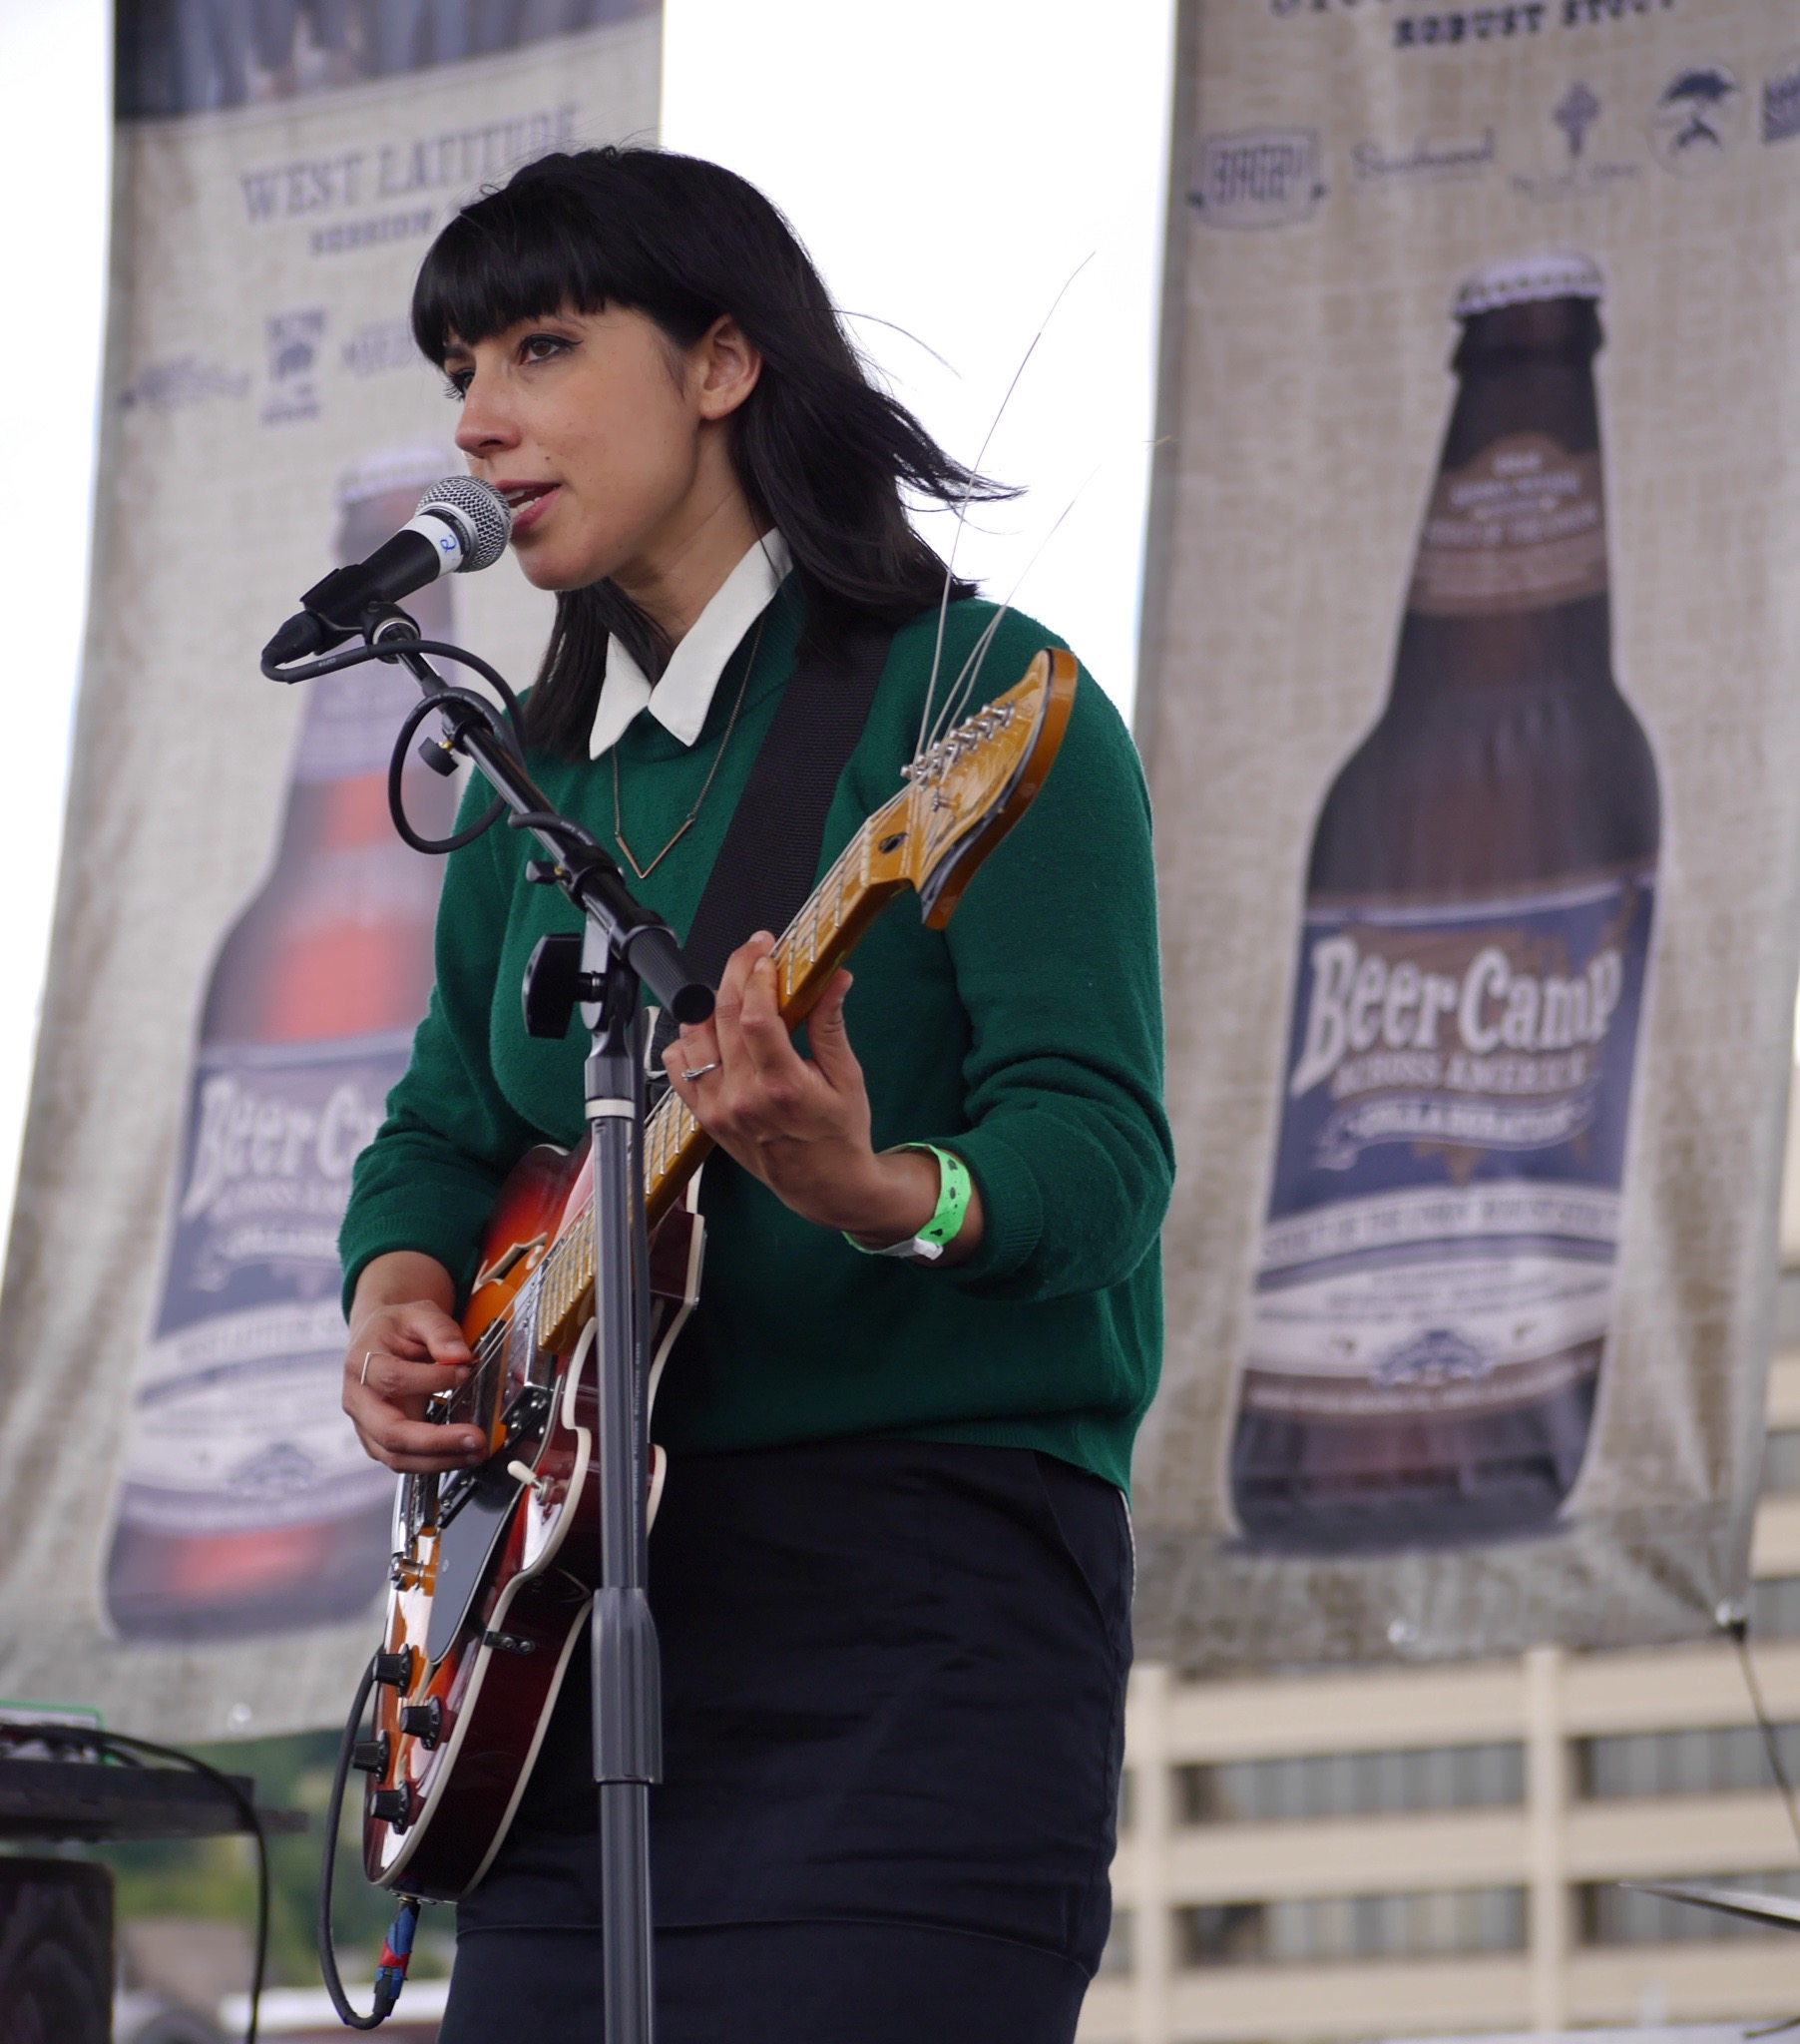 Jessica Dobson of Deep Sea Diver performing at Sierra Nevada Beer Camp Across America Festival in Seattle. (photo by Cat Stelzer)